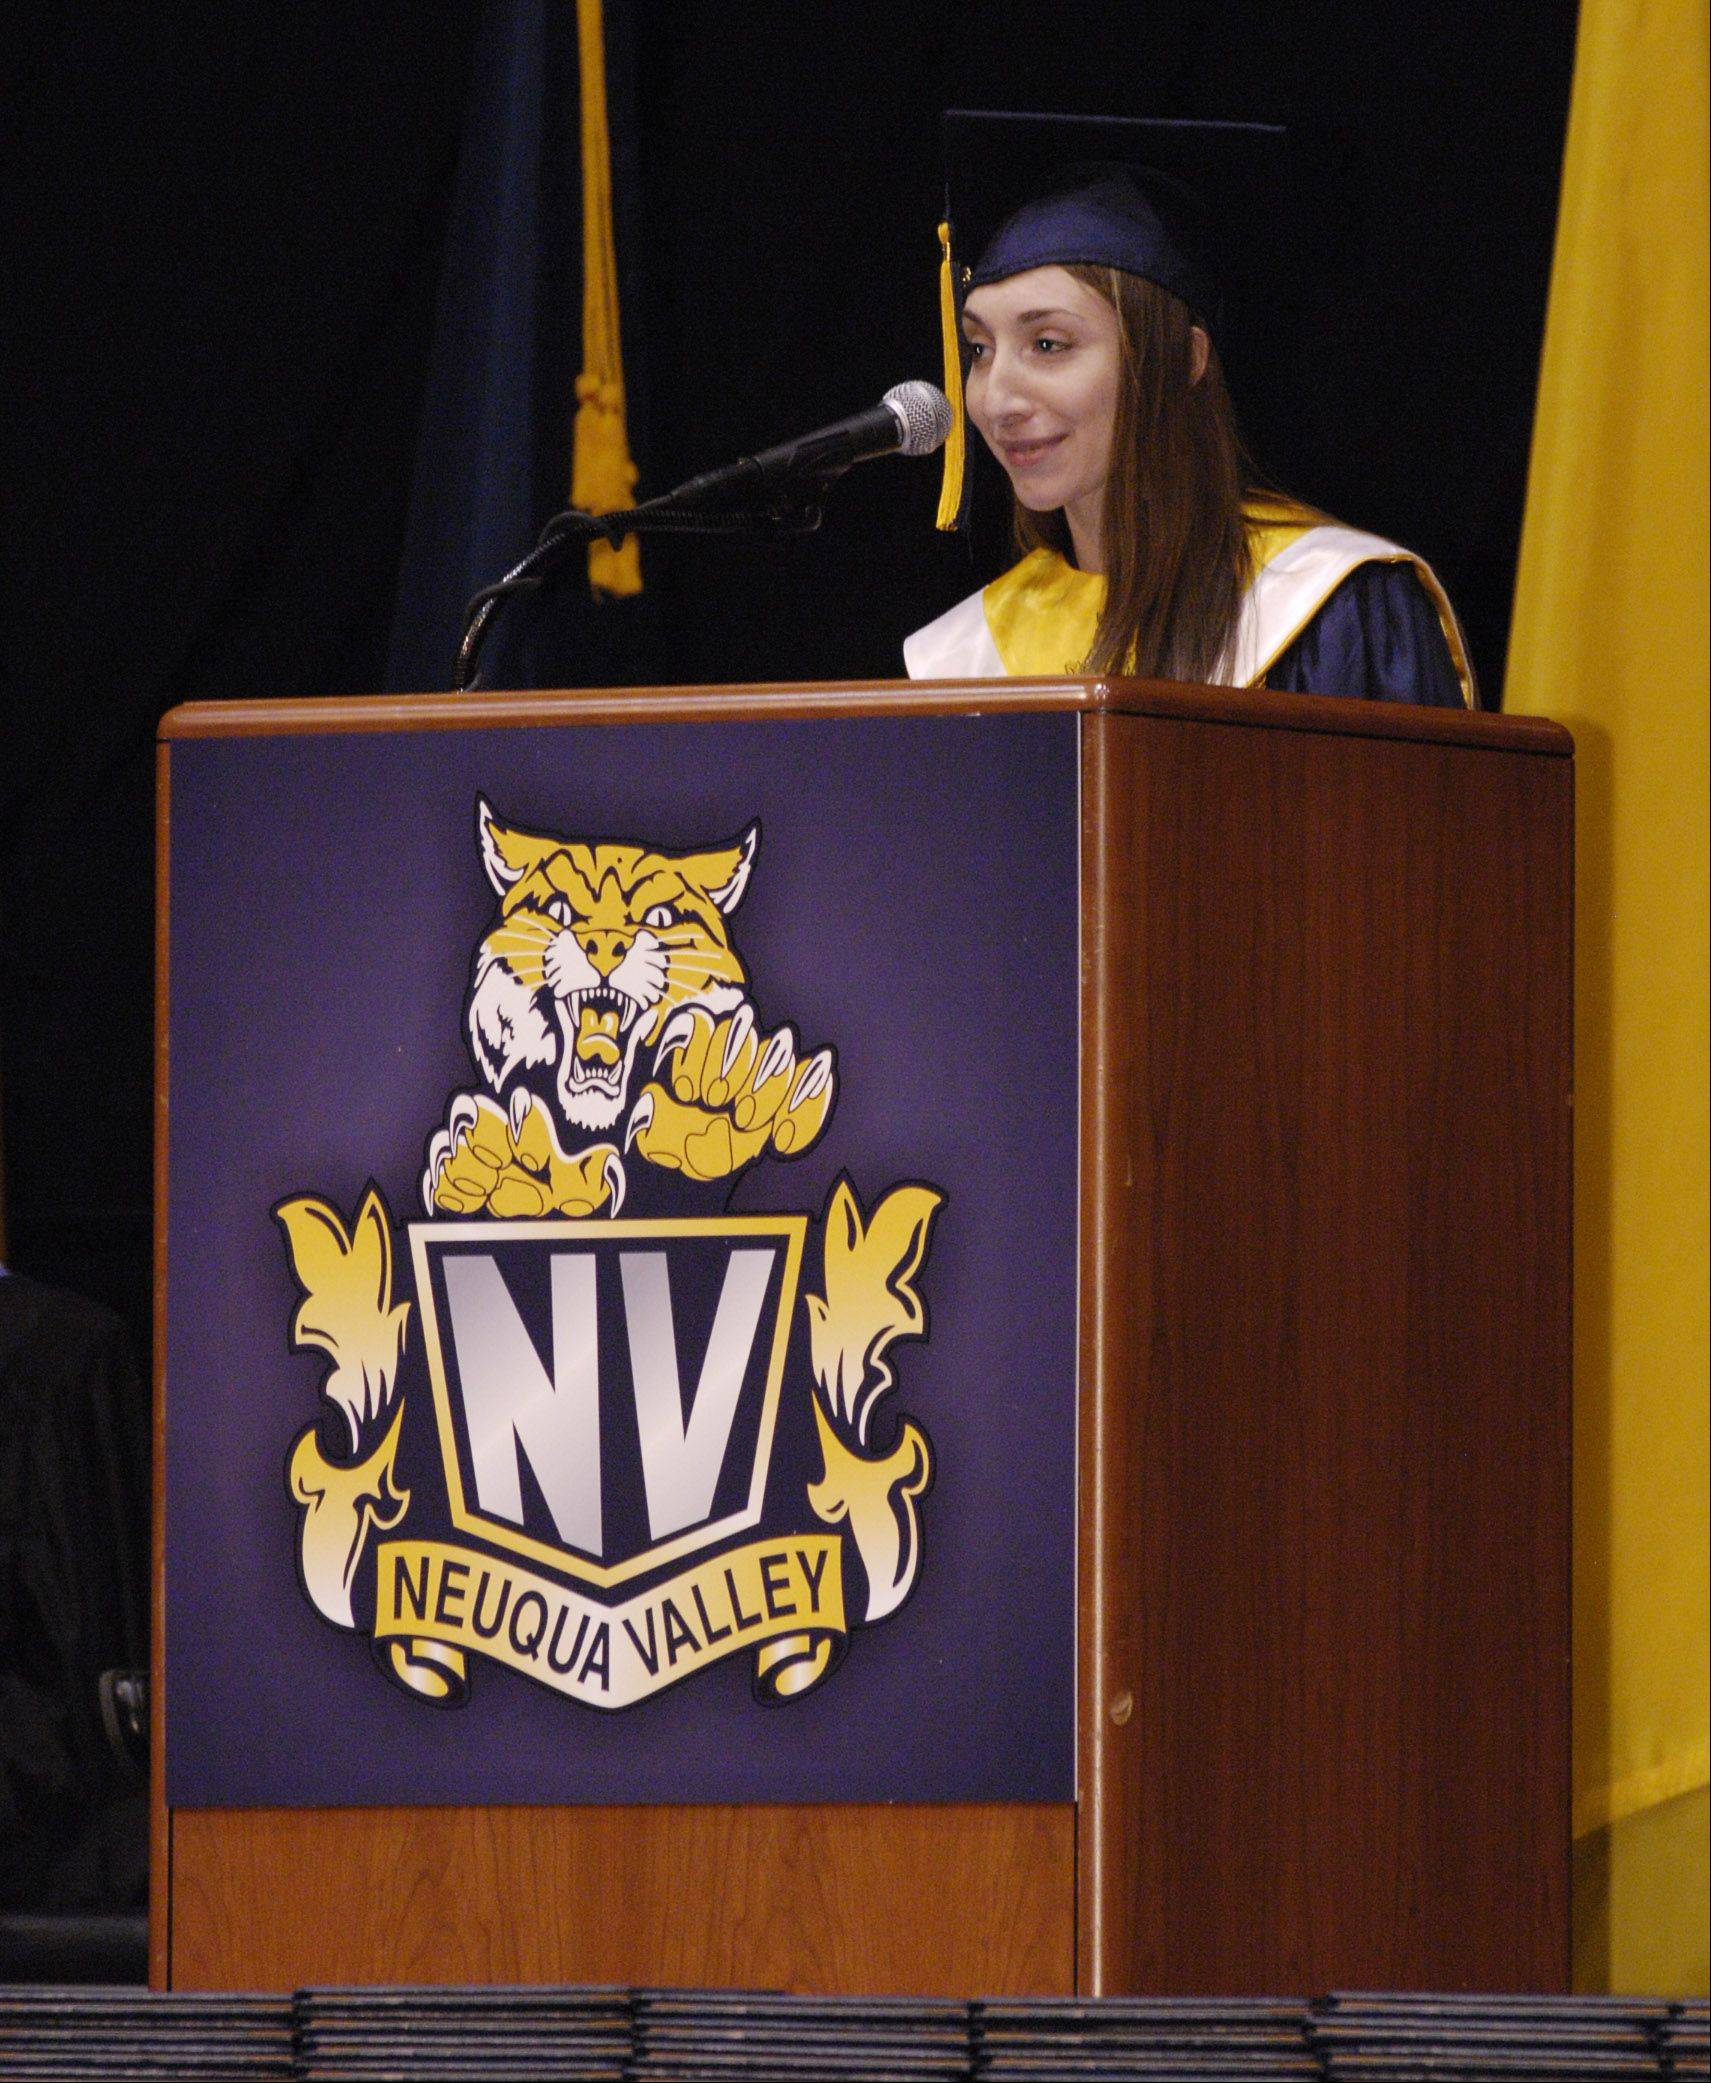 Julia Rabin gives the farewell address at Neuqua Valley High School's graduation ceremony Sunday at the NIU Convocation Center in DeKalb.